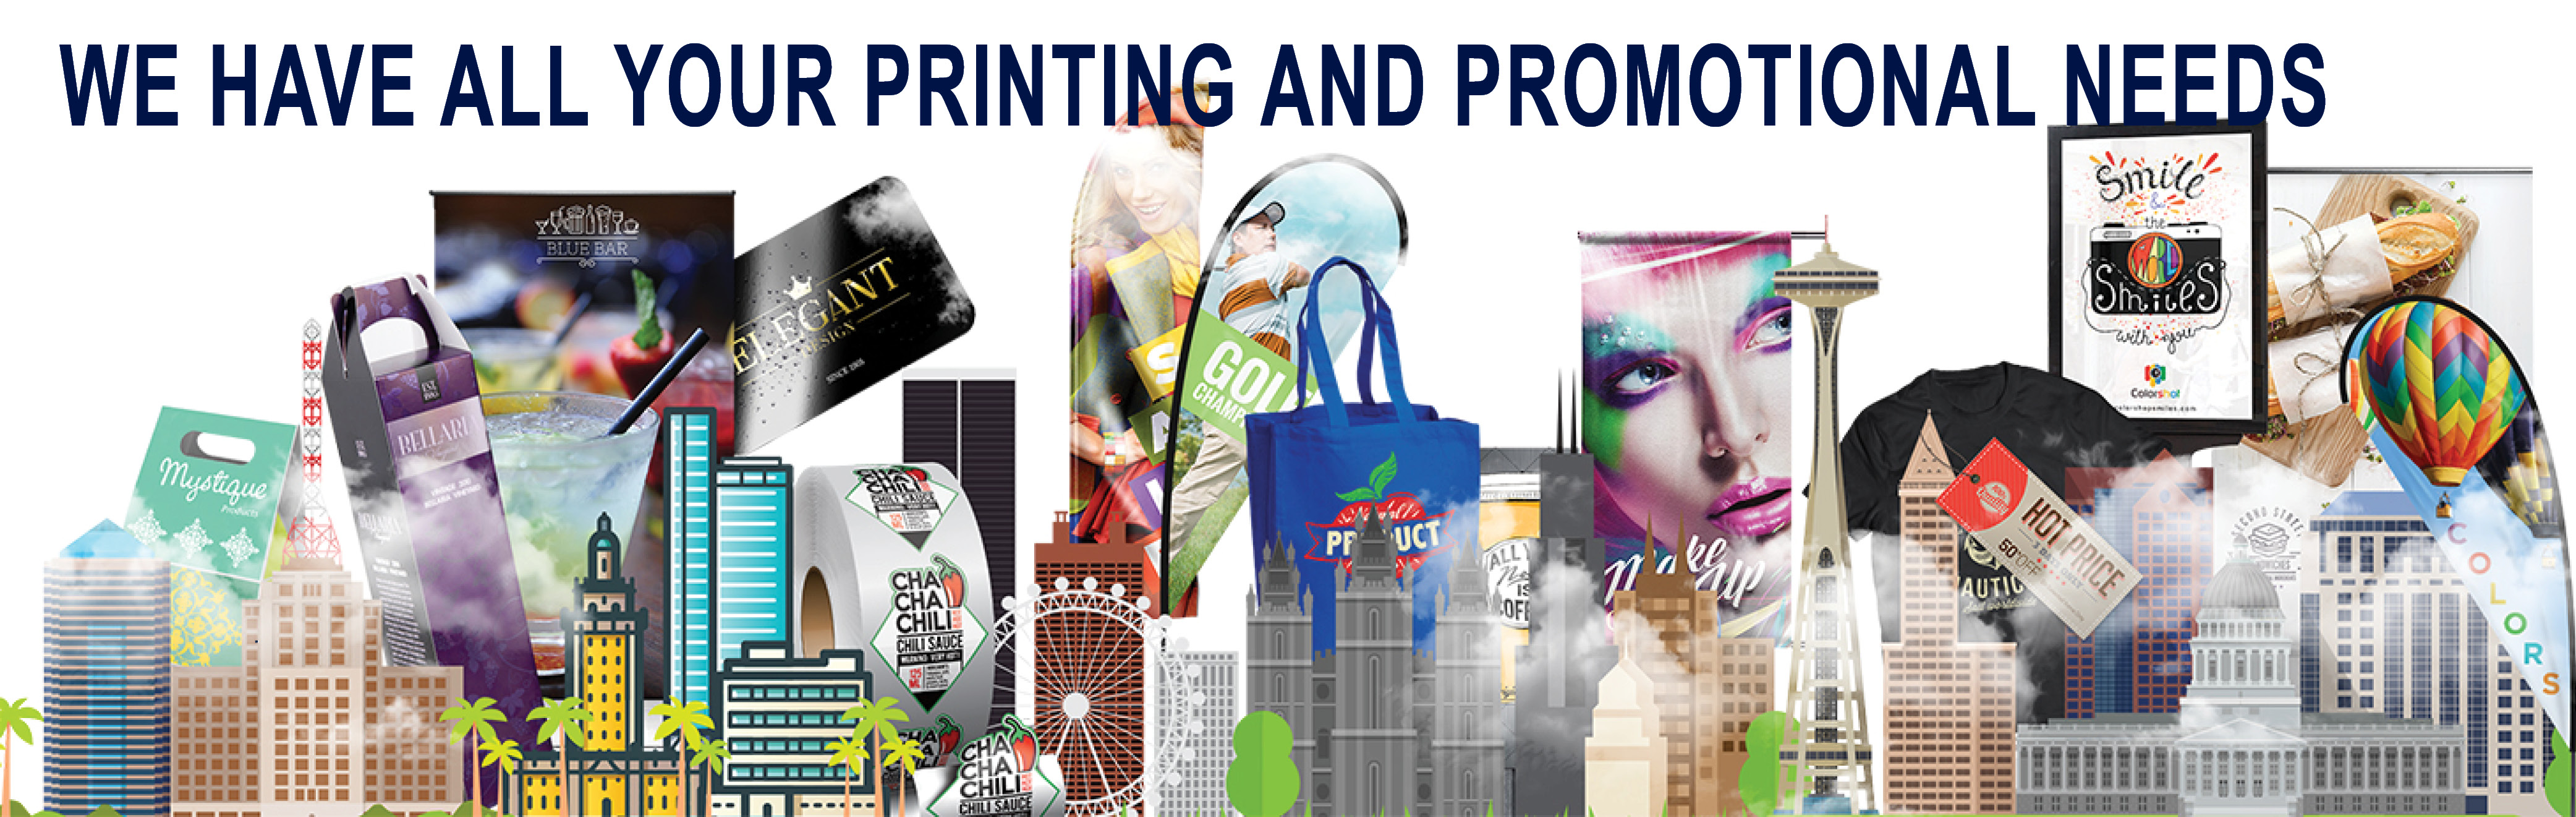 We Have All Your Printing Needs